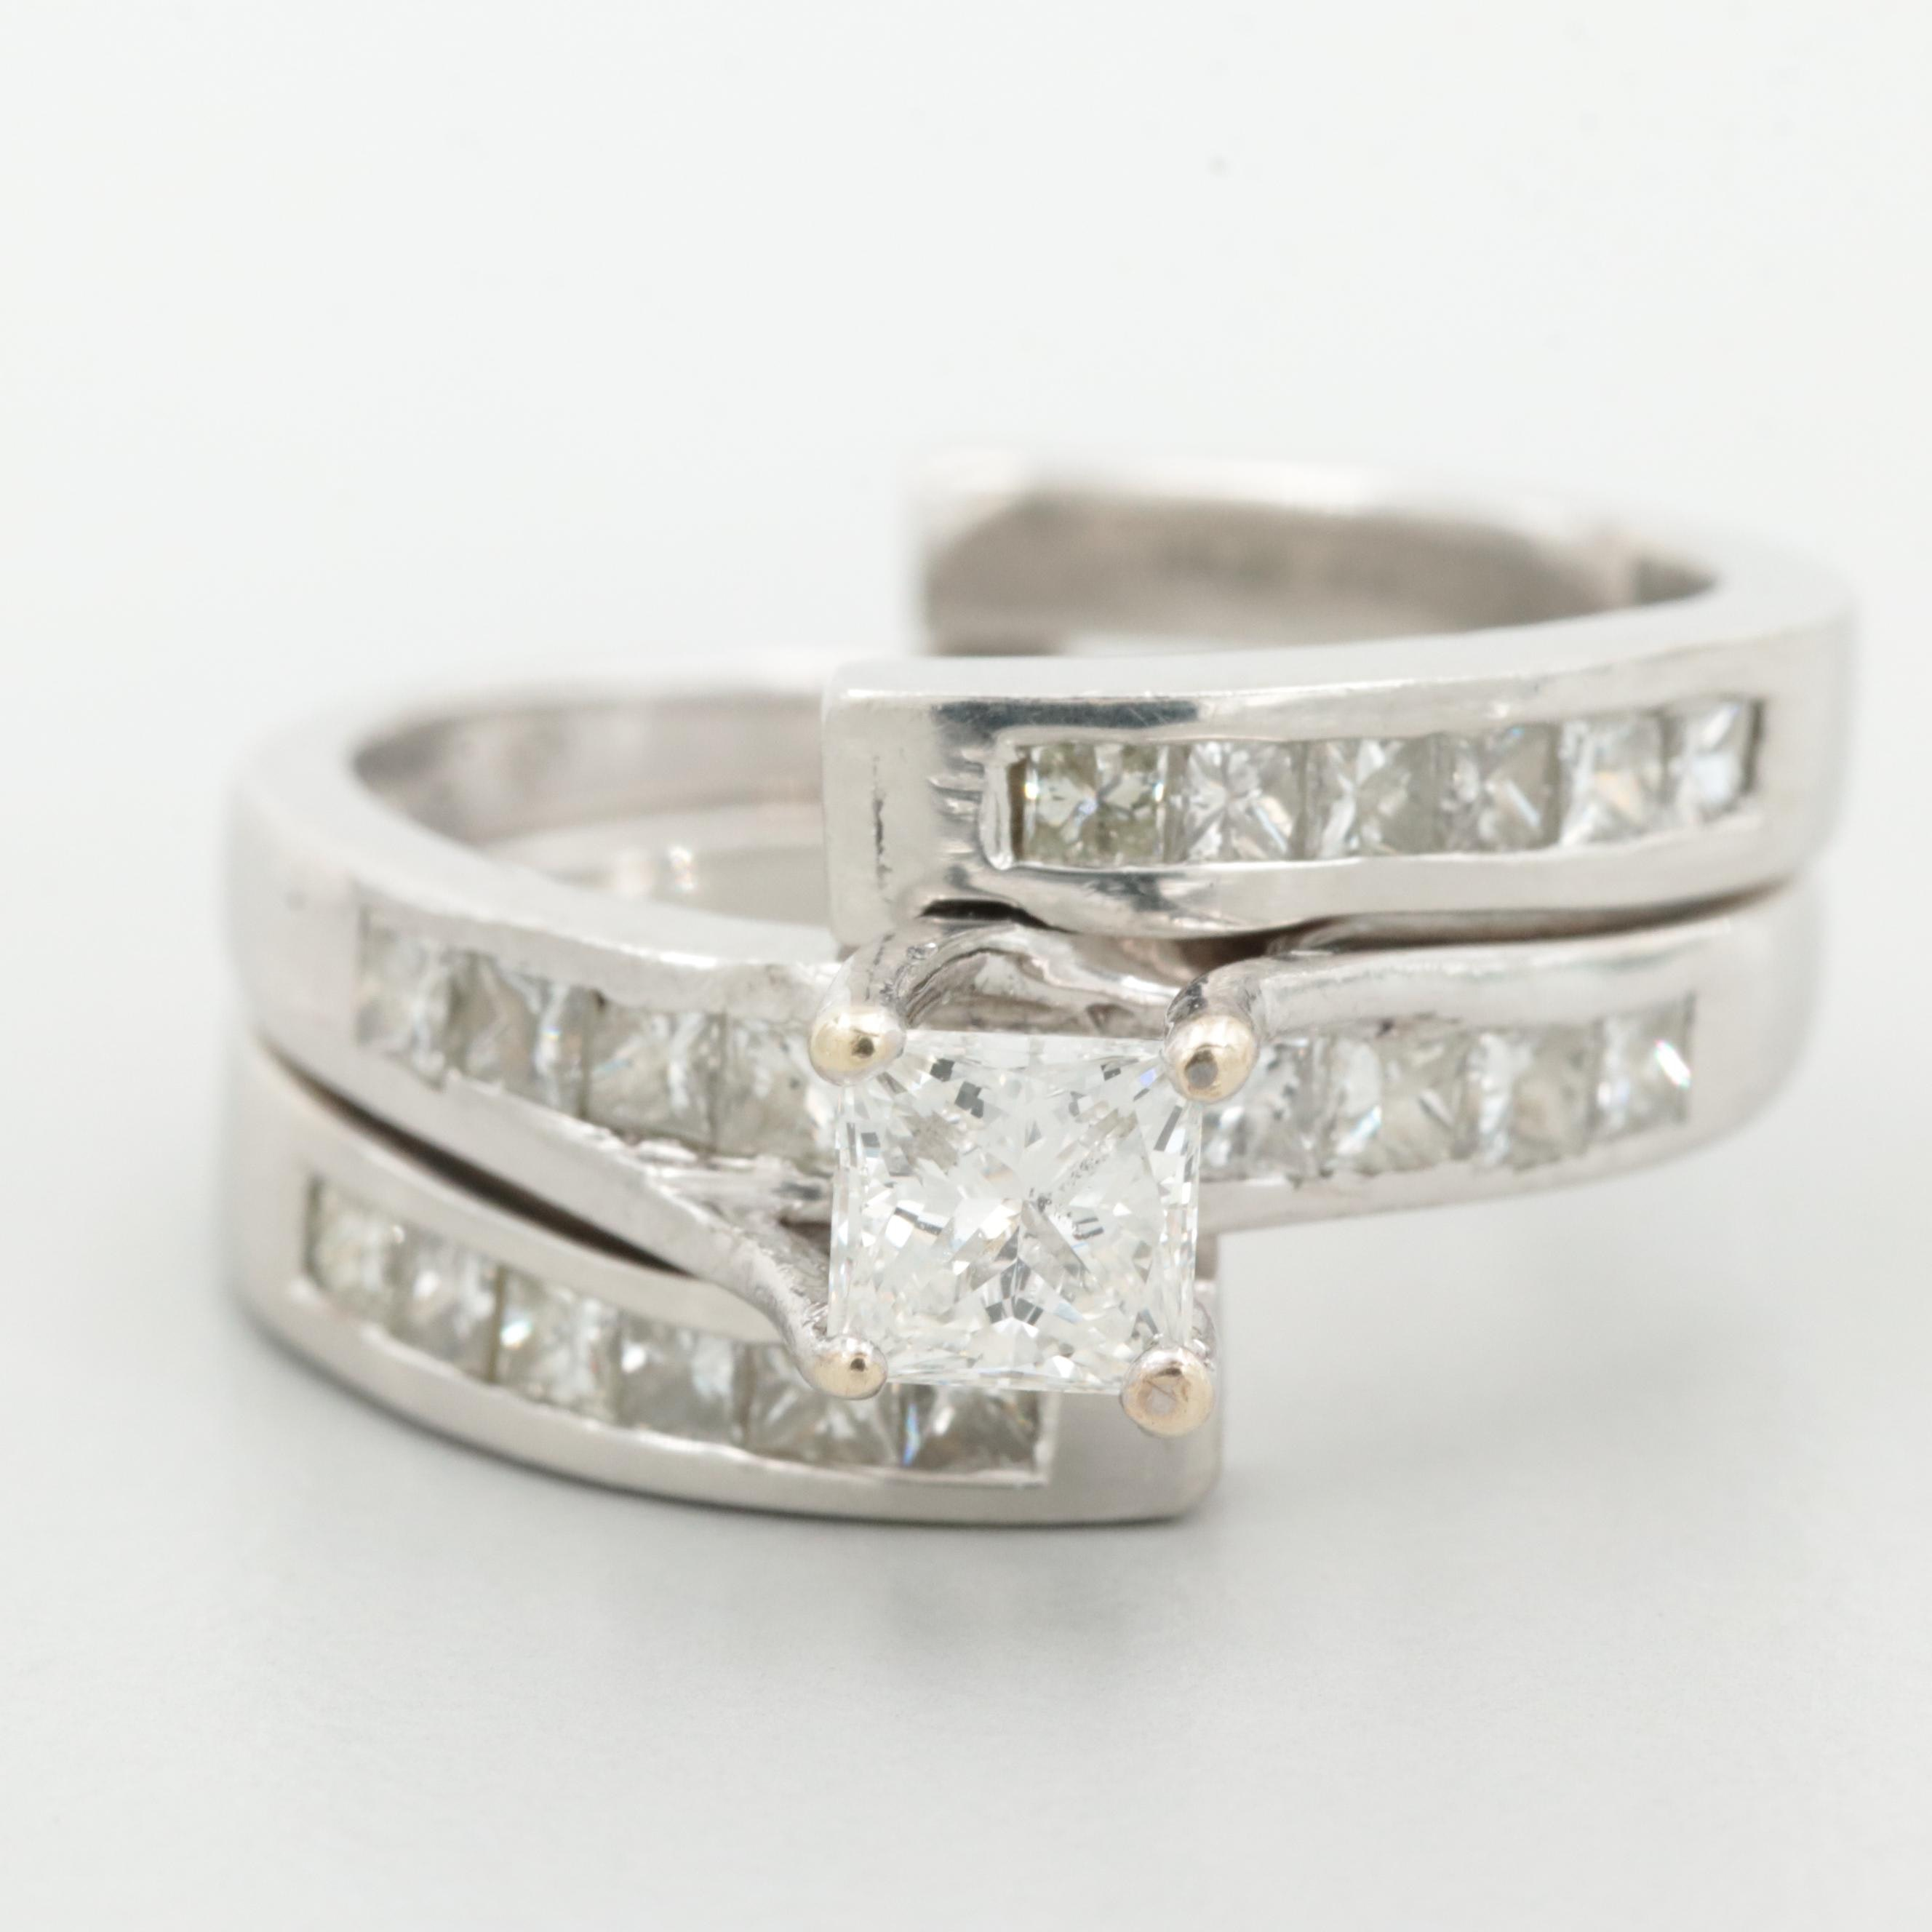 14K White Gold 0.98 CTW Diamond Ring with Bypass Enhancer Ring